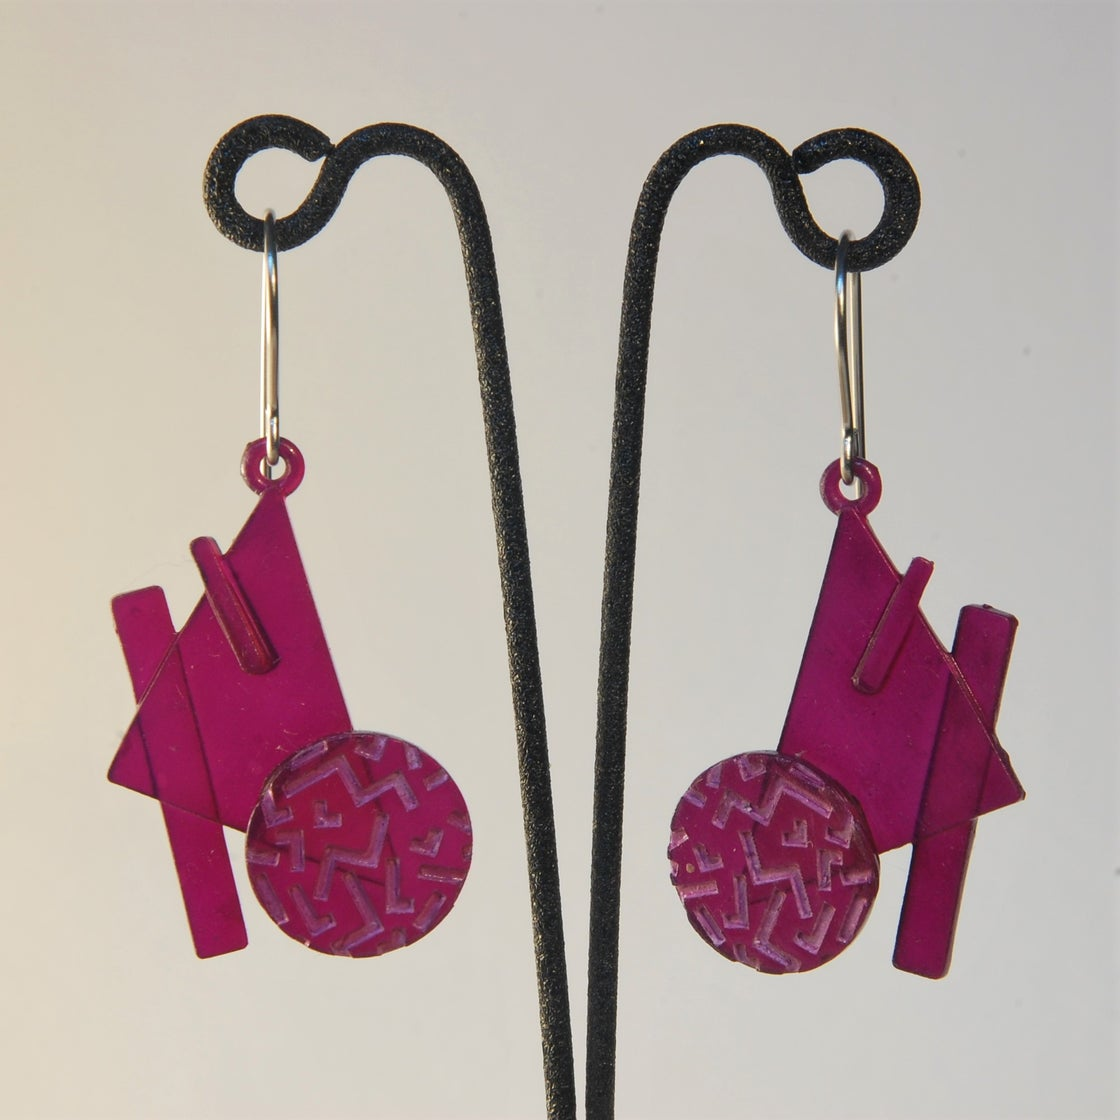 Image of Retro-4 3D Printed Earrings